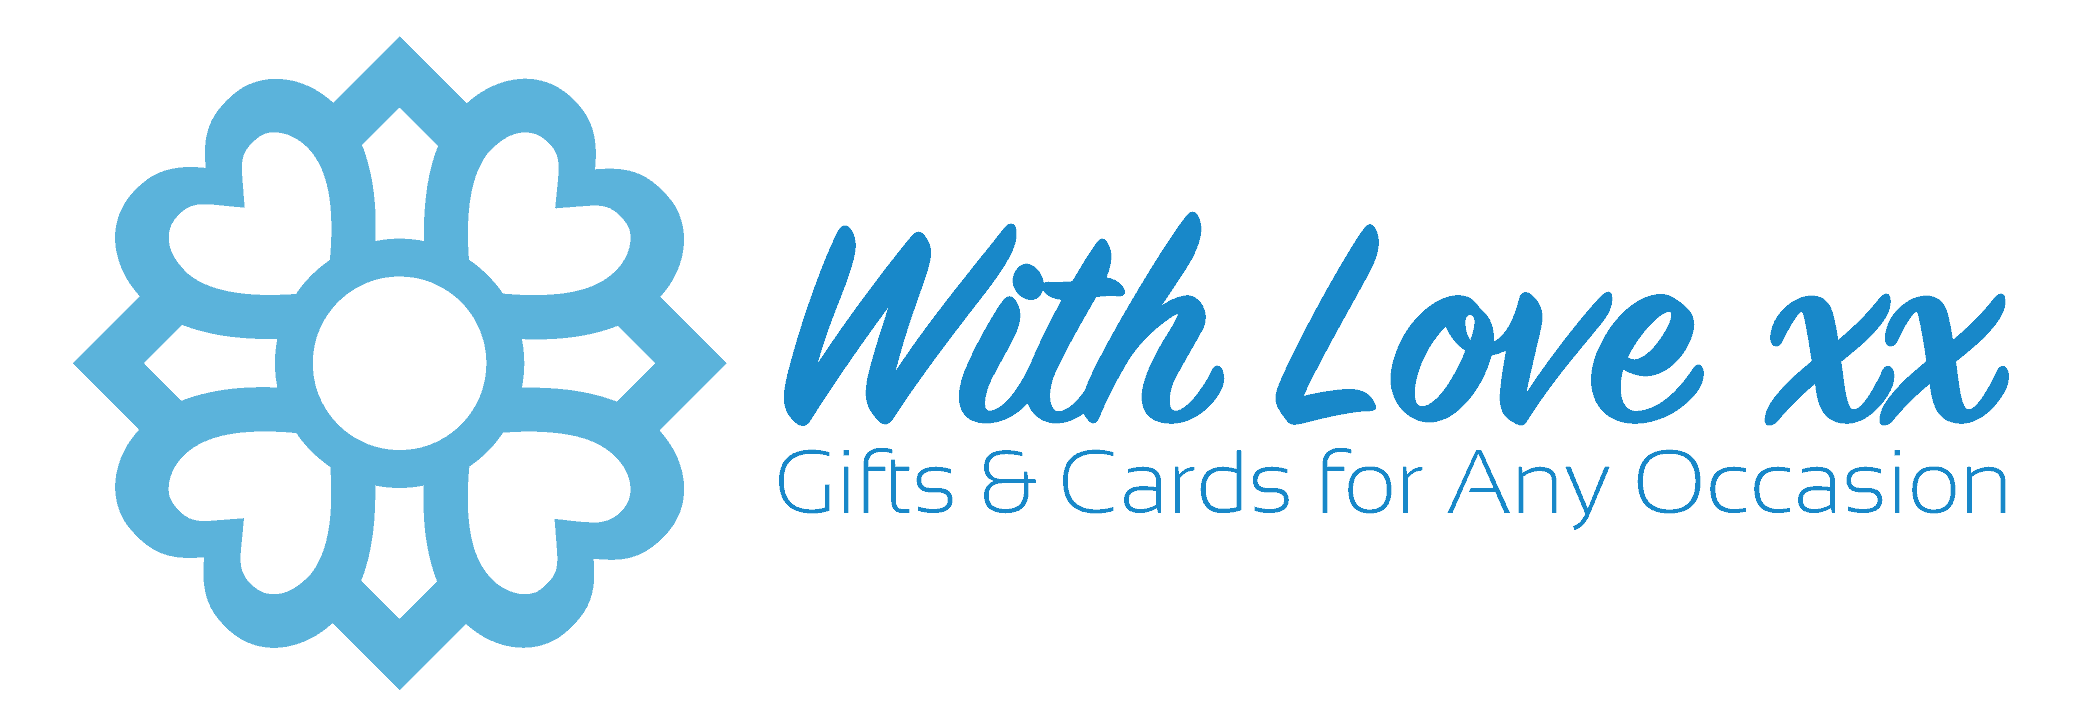 With Love Gifts & Cards